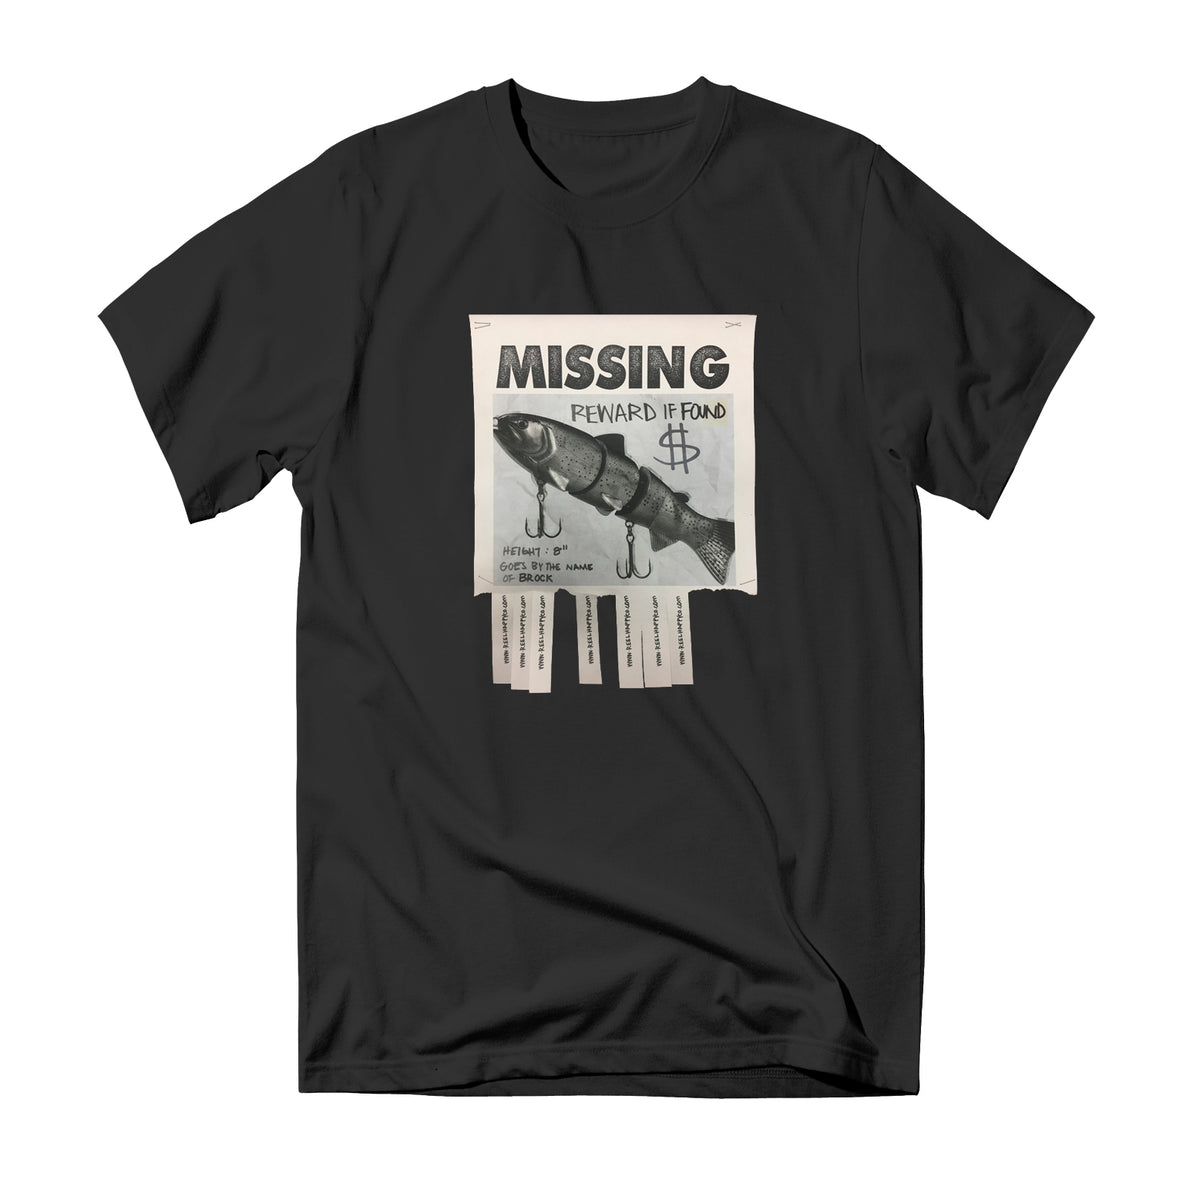 Missing Tee - Black - Reel Happy Co